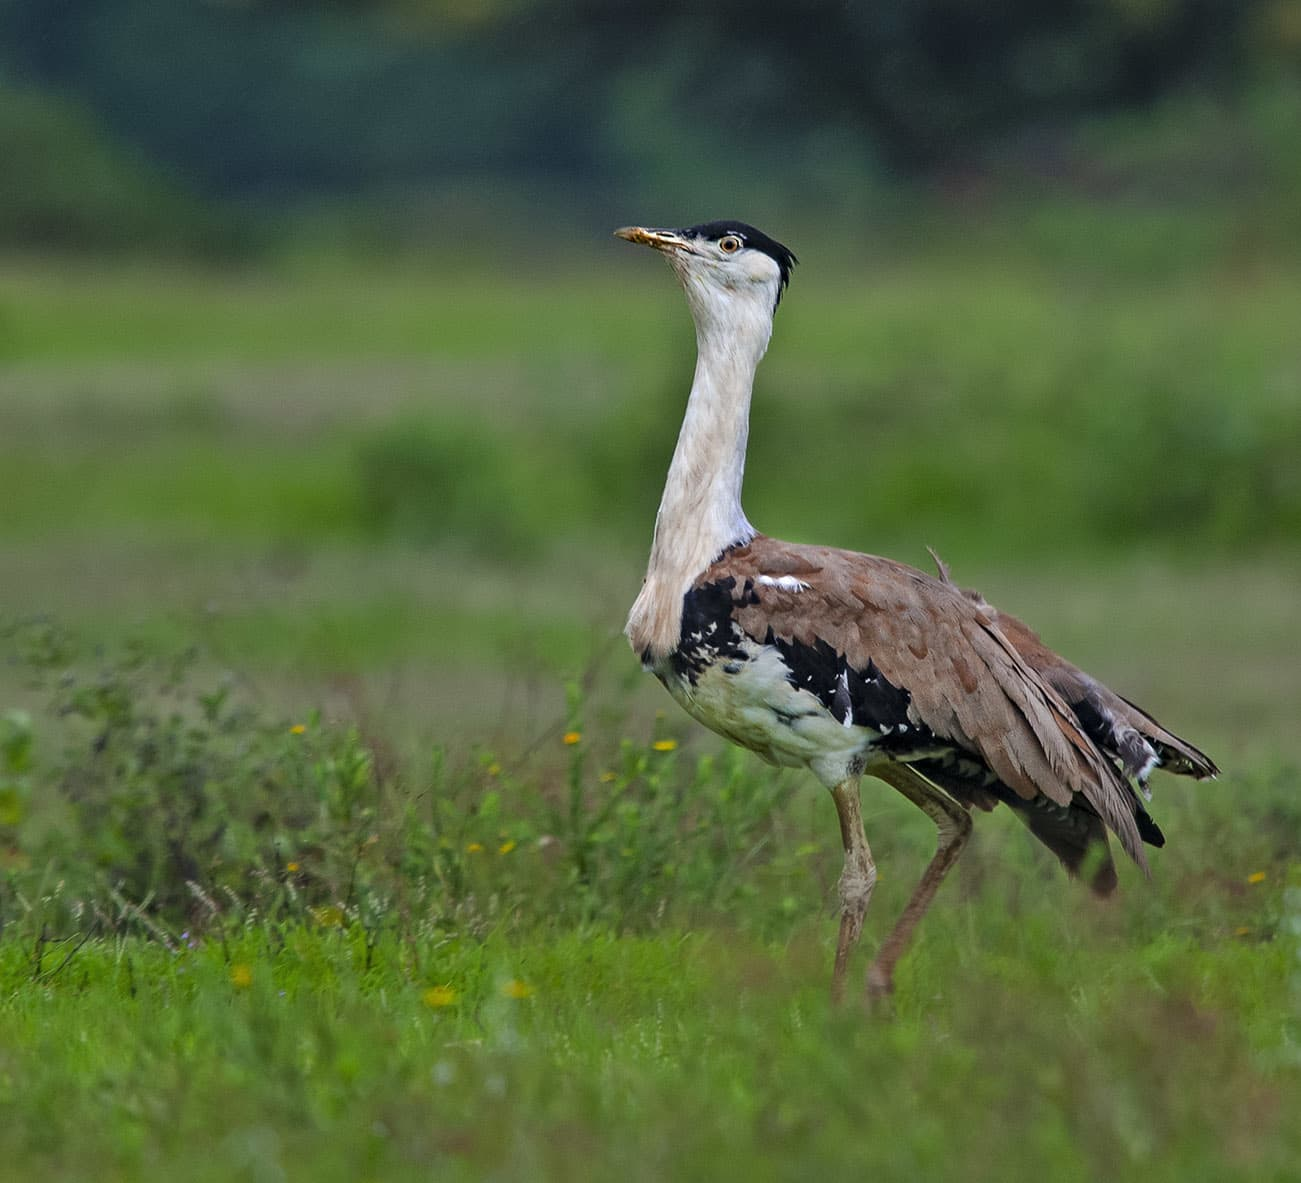 Out of Sight: The Rann, Thar, and the Great Indian Bustard